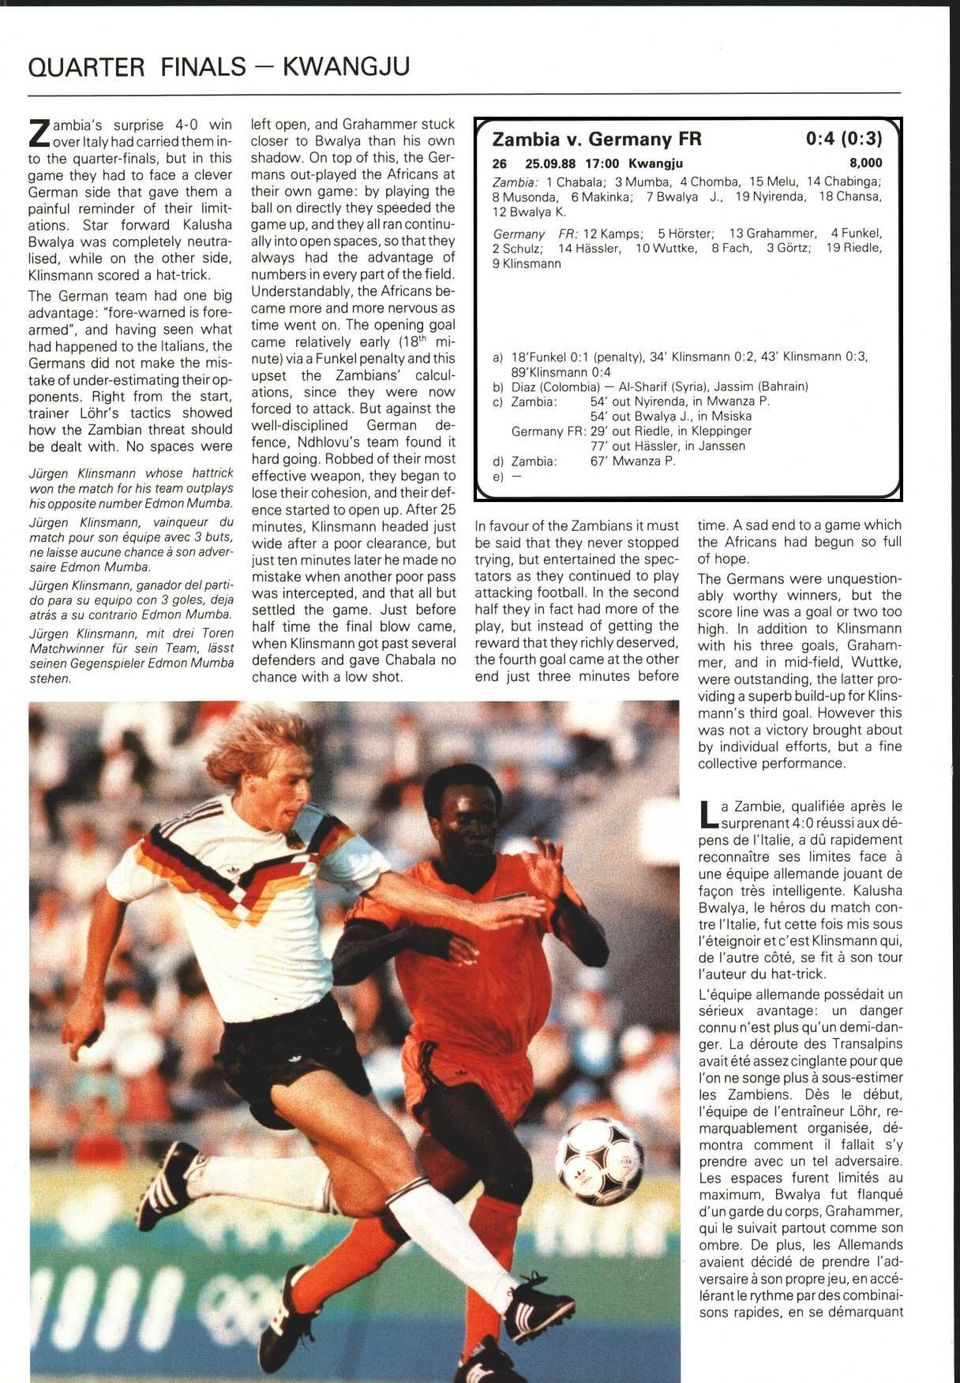 having seen what had happened to the Italians, the Germans did not make the mistake of under-estimating their opponents Right from the start, trainer Löhr's tactics showed how the Zambian threat